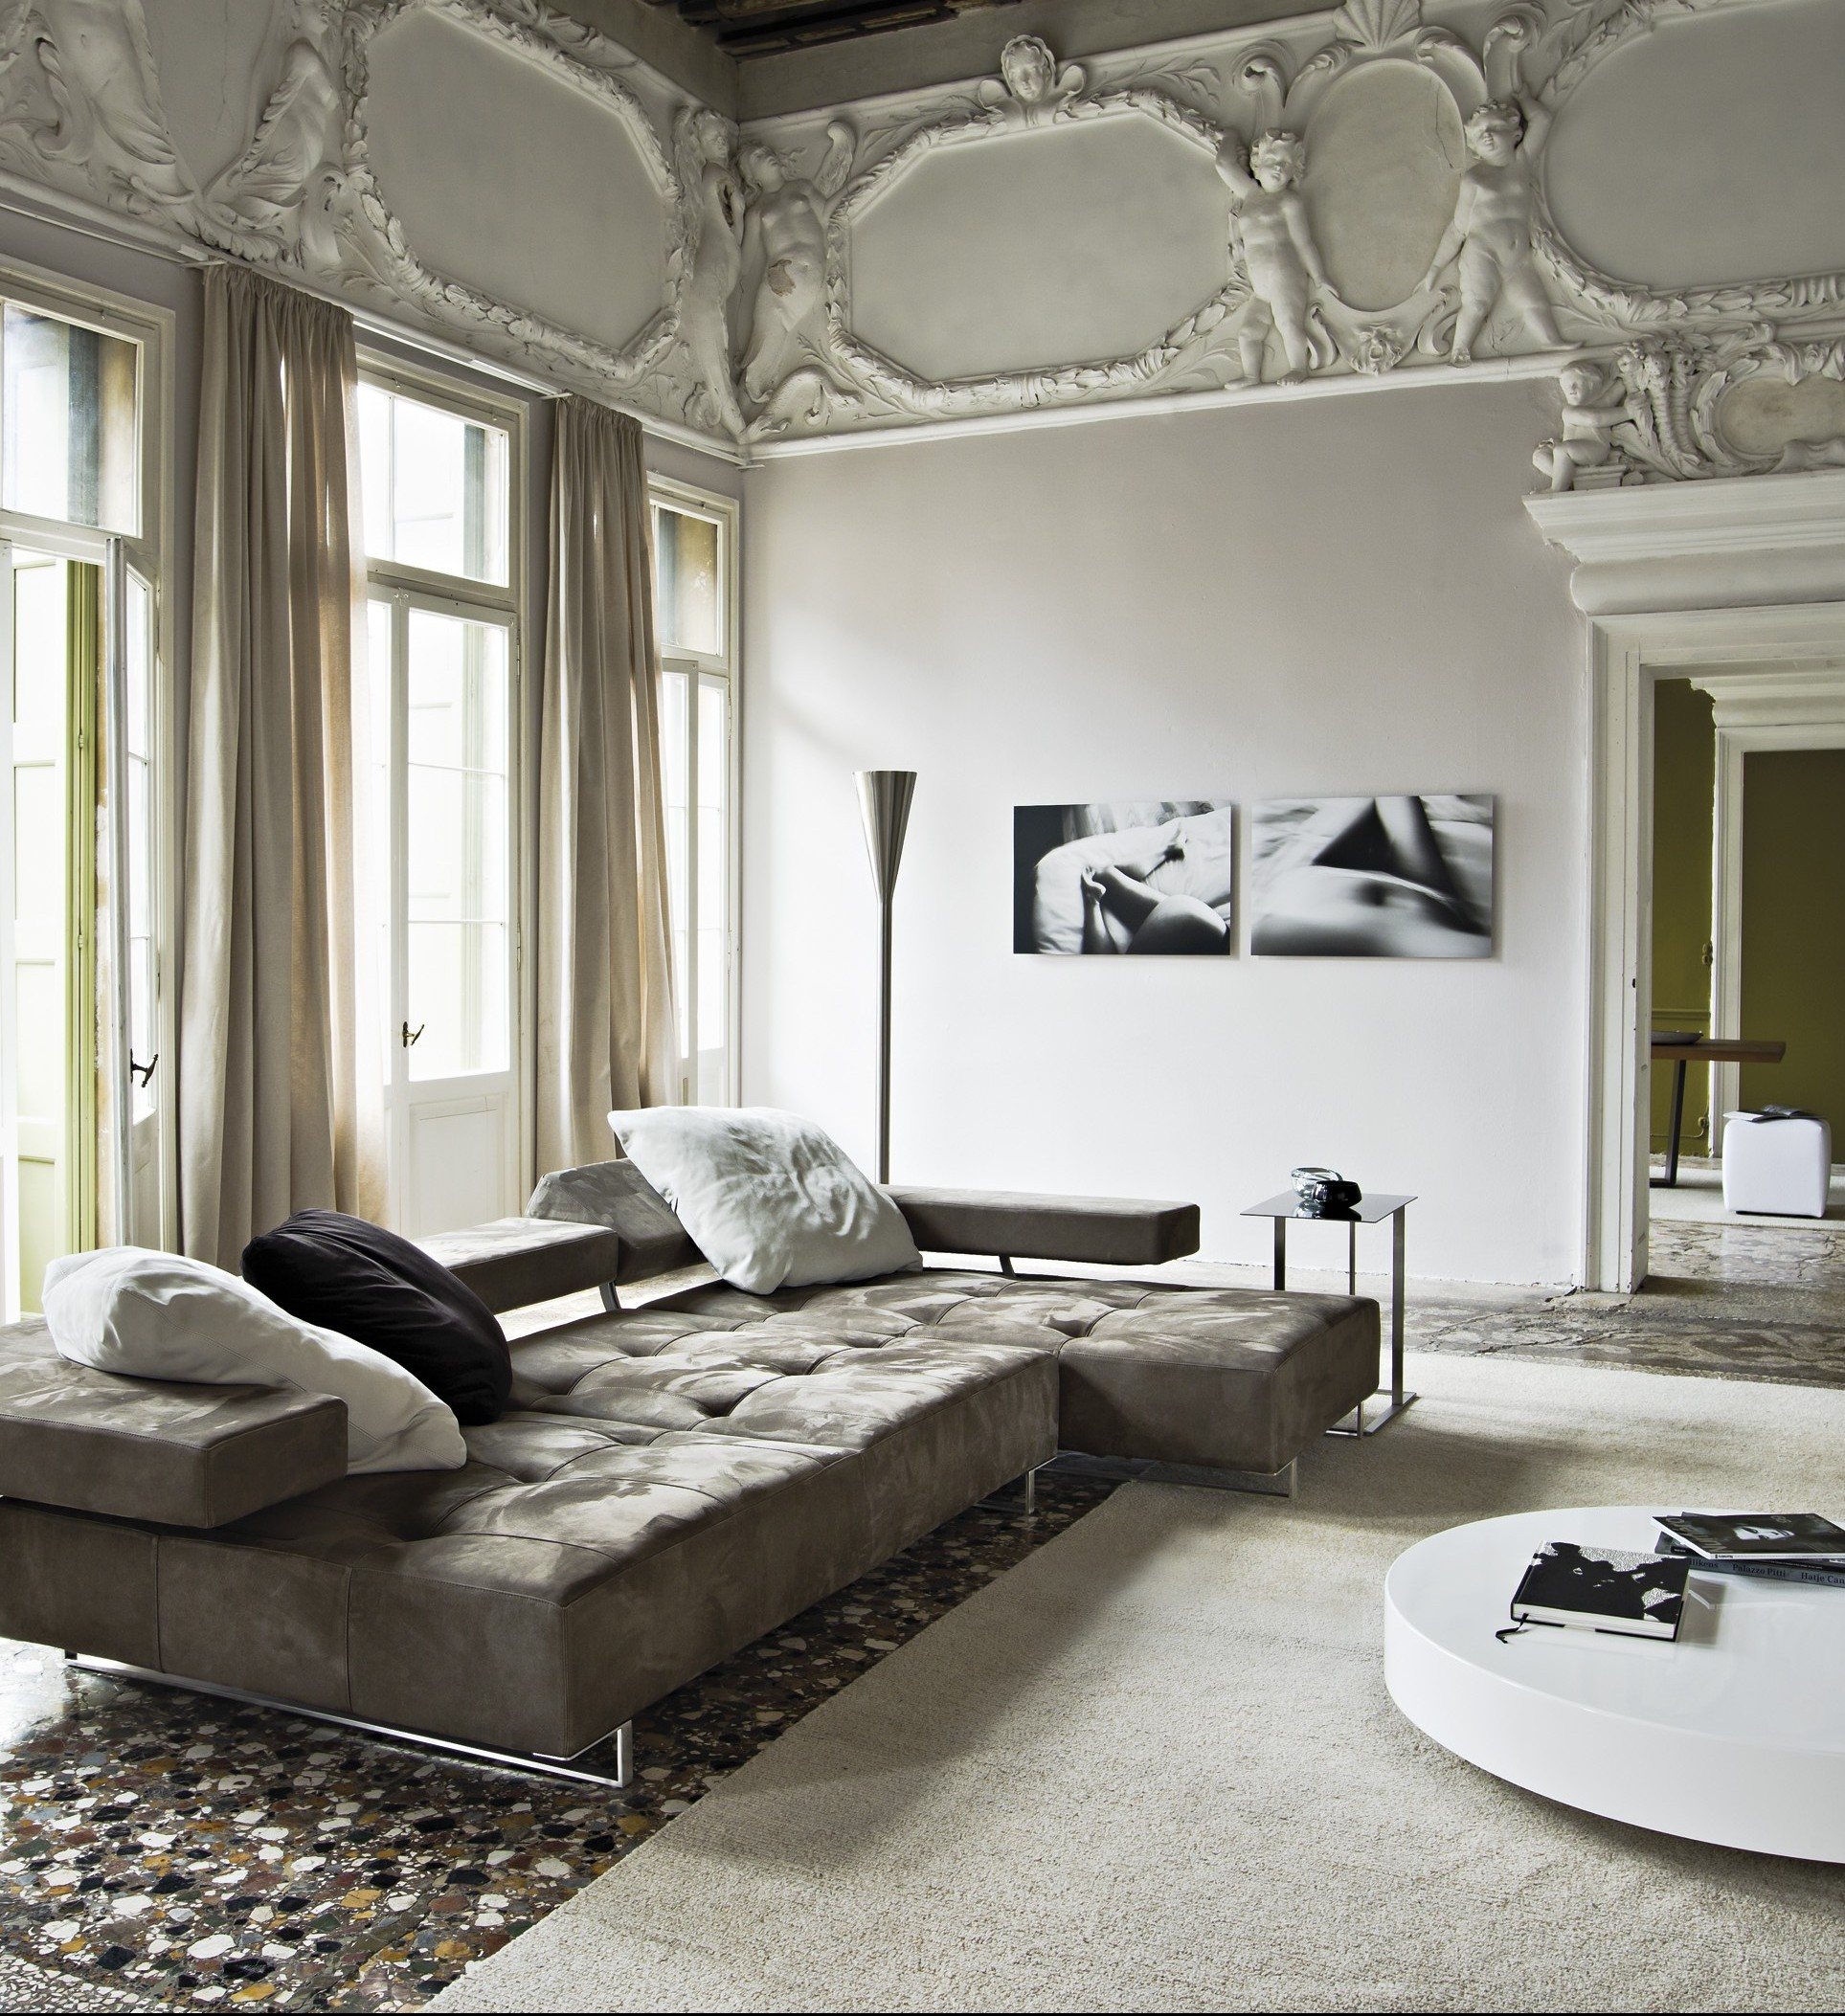 la dolce vita in hannover presseblog. Black Bedroom Furniture Sets. Home Design Ideas